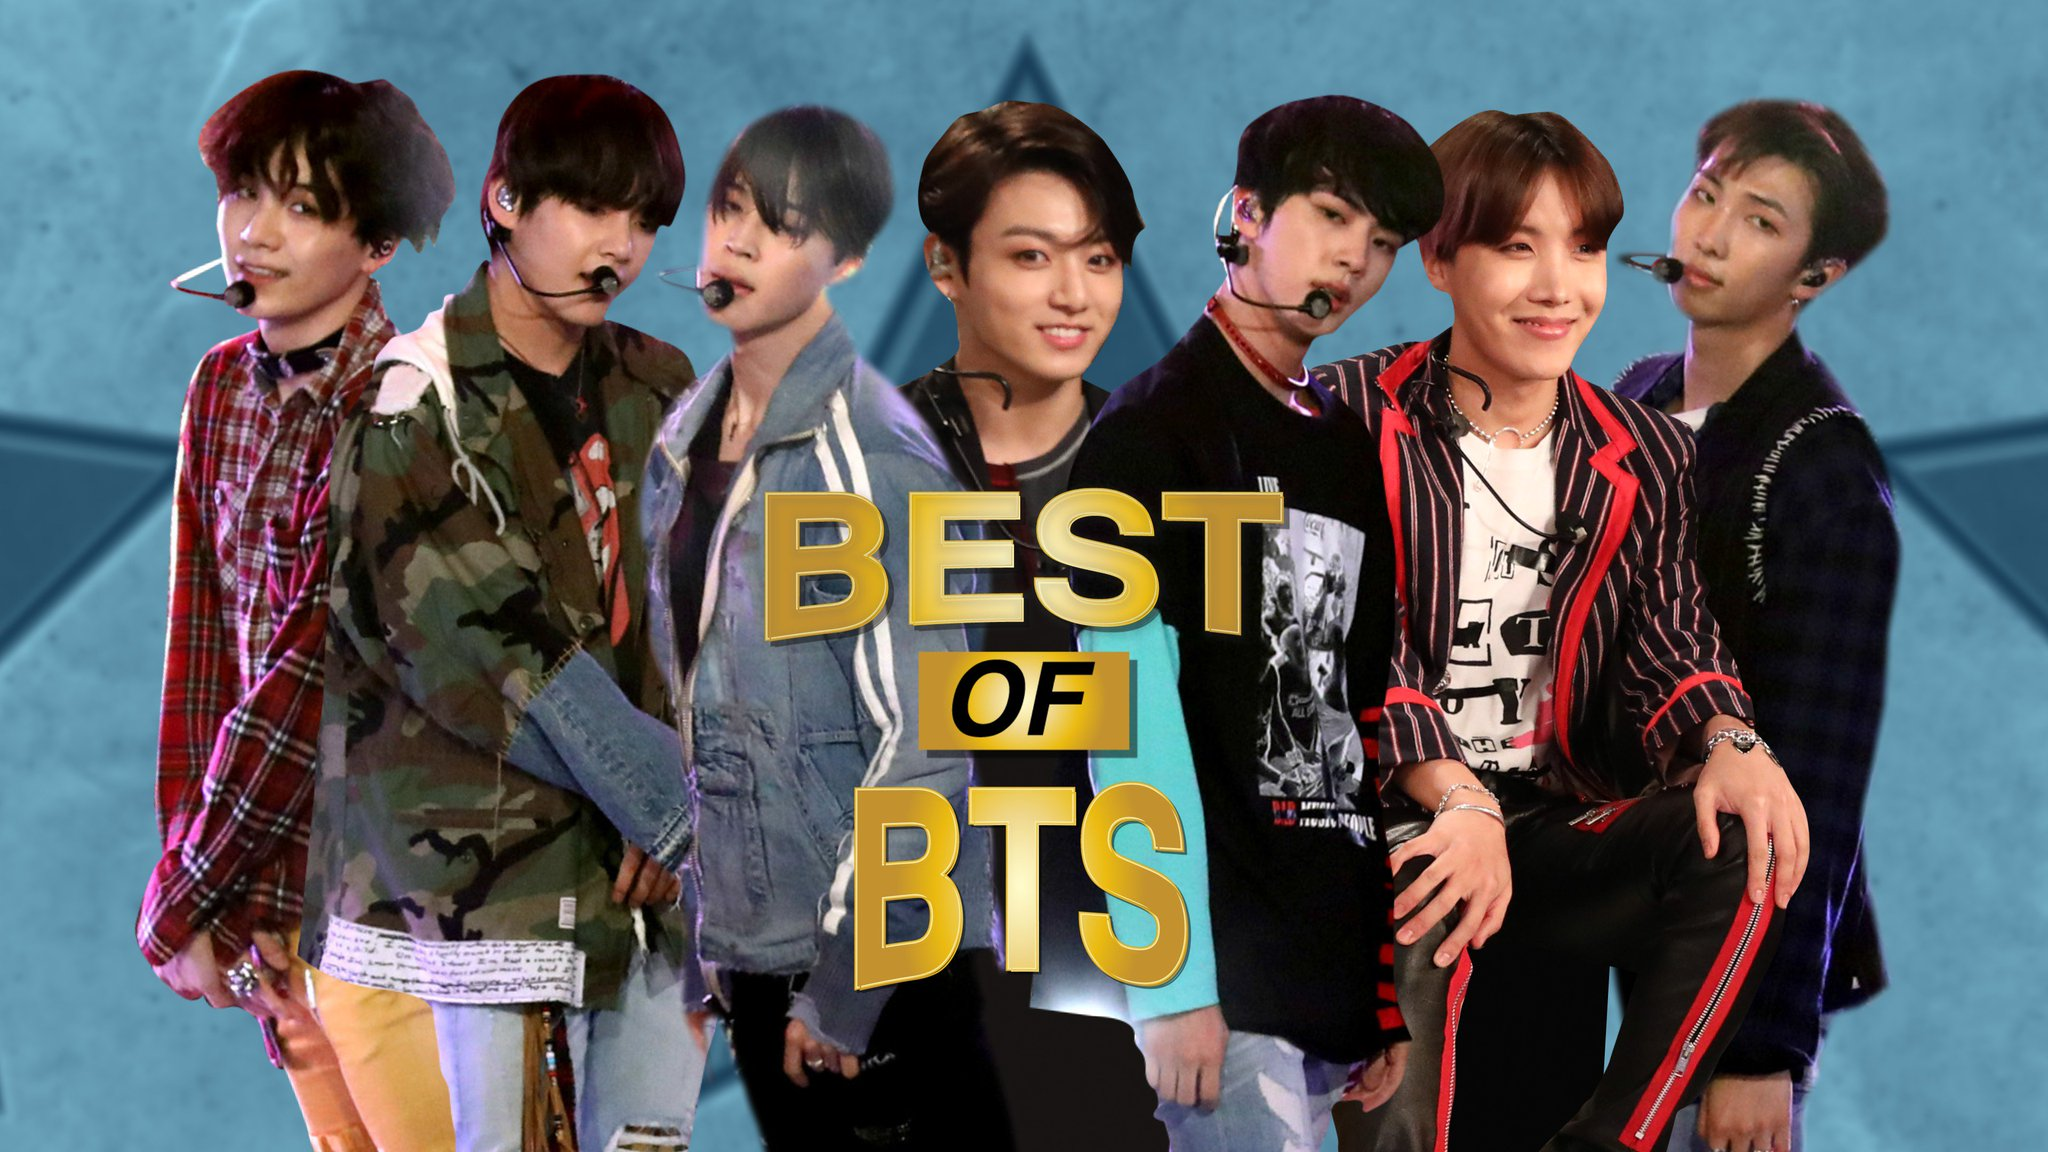 It's #BTSWeek on @ellentube. I'm kicking it off with this montage. You're welcome, #BTSArmy. @BTS_twt https://t.co/KEWdyE6zg0